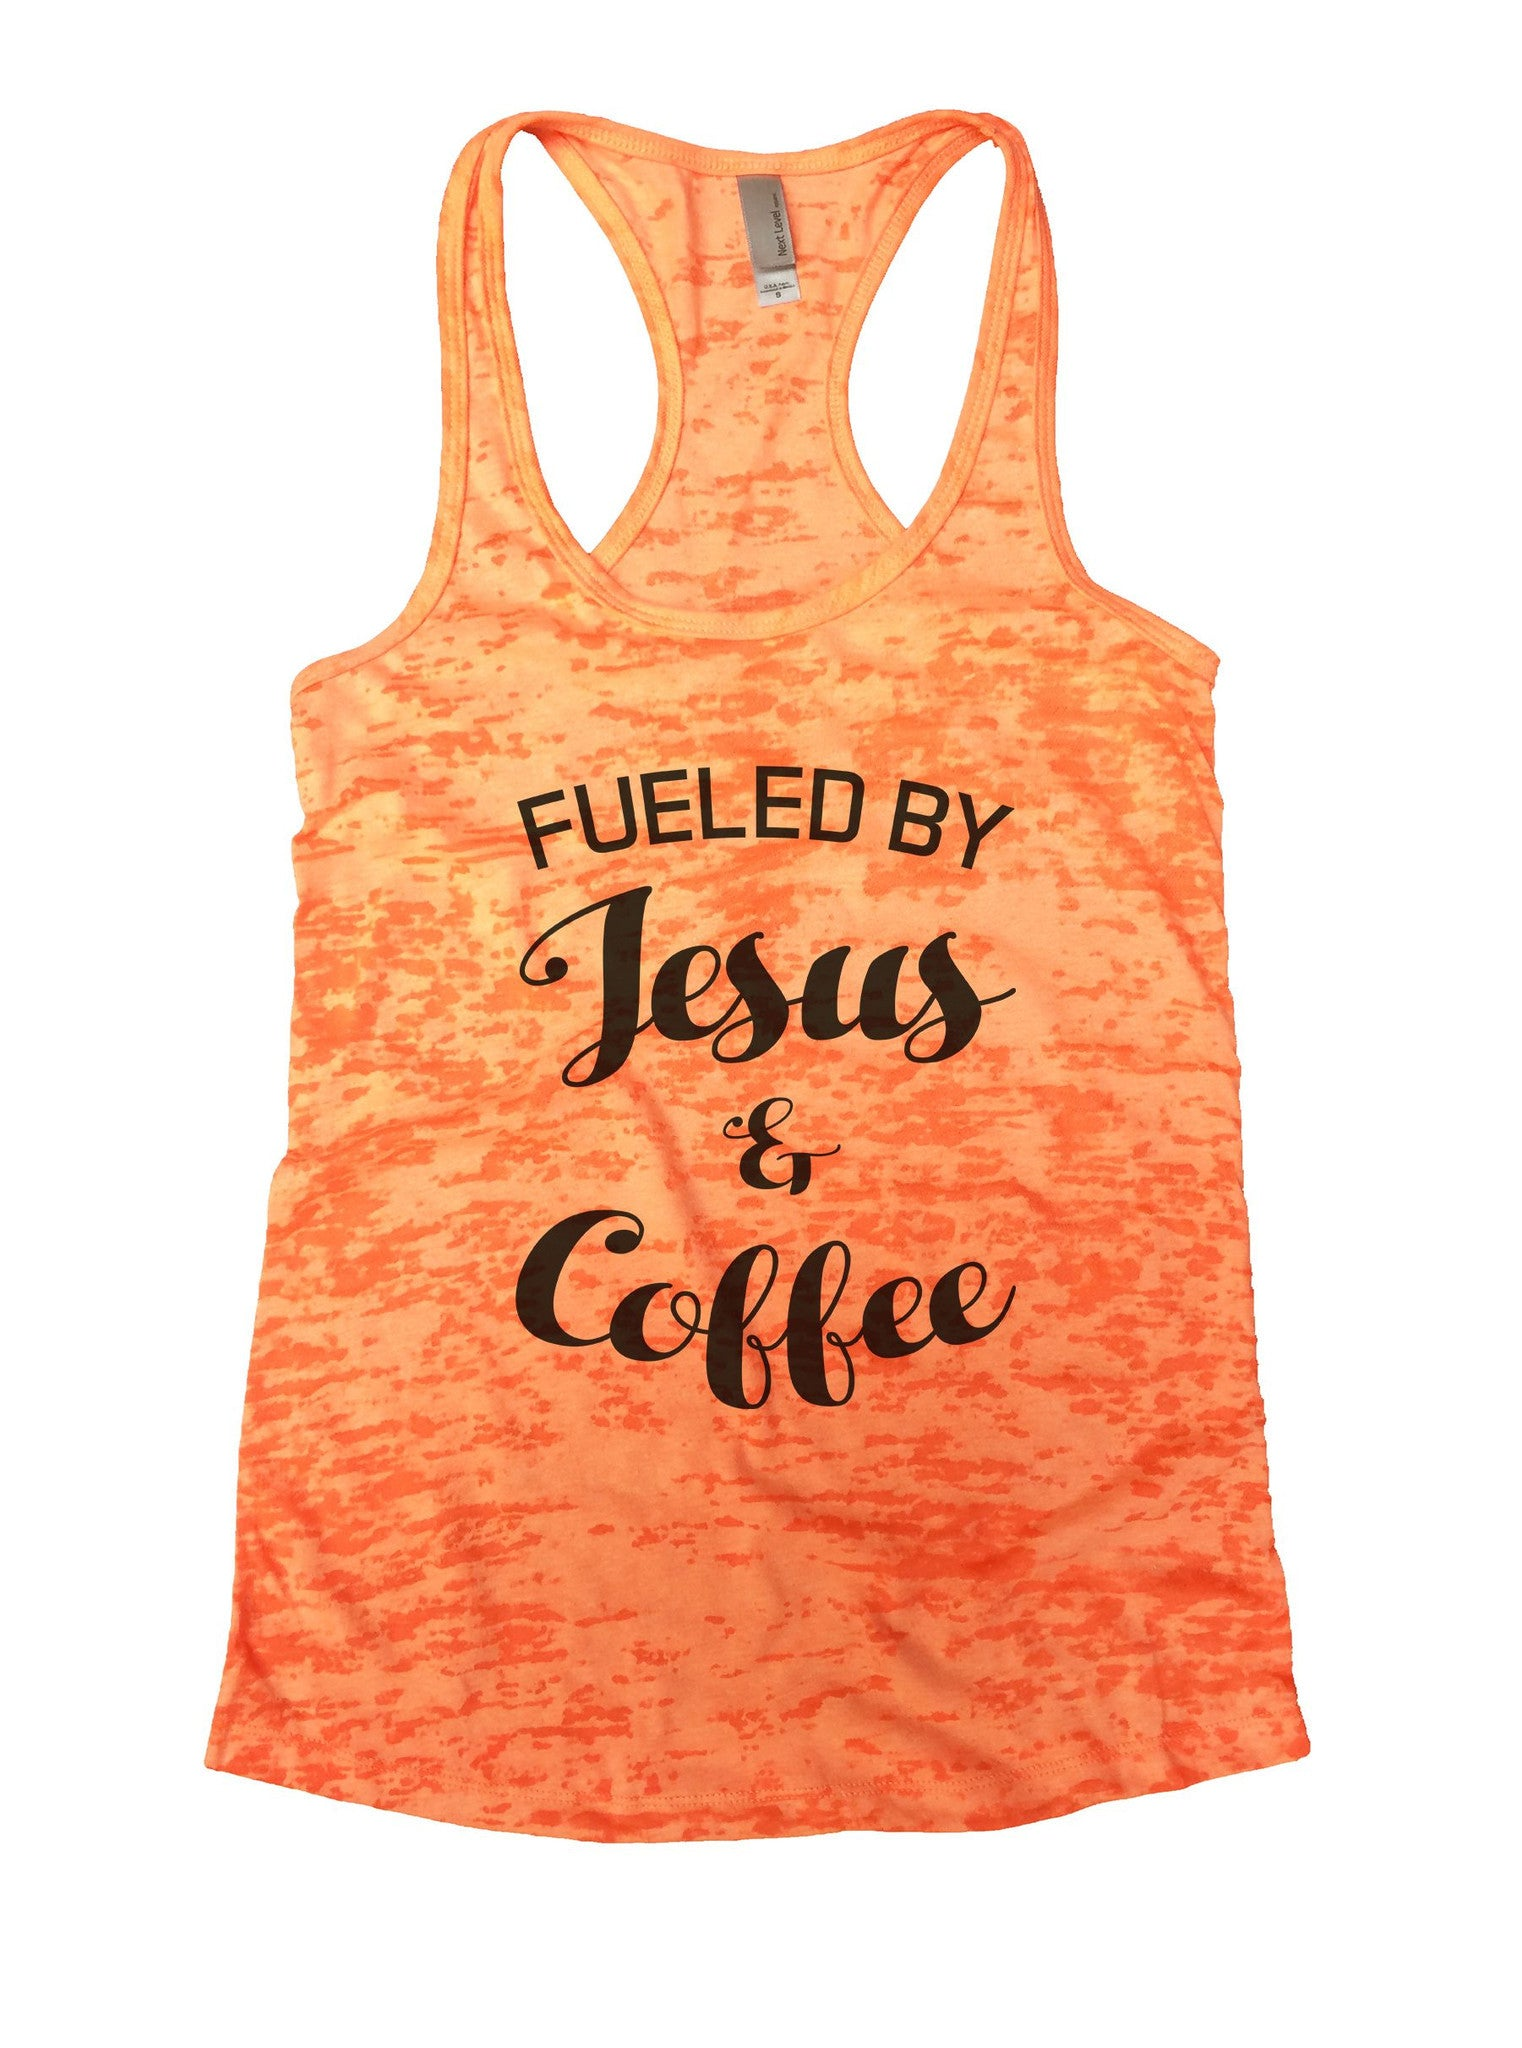 Fueled By Jesus & Coffee Burnout Tank Top By BurnoutTankTops.com - 1128 - Funny Shirts Tank Tops Burnouts and Triblends  - 4